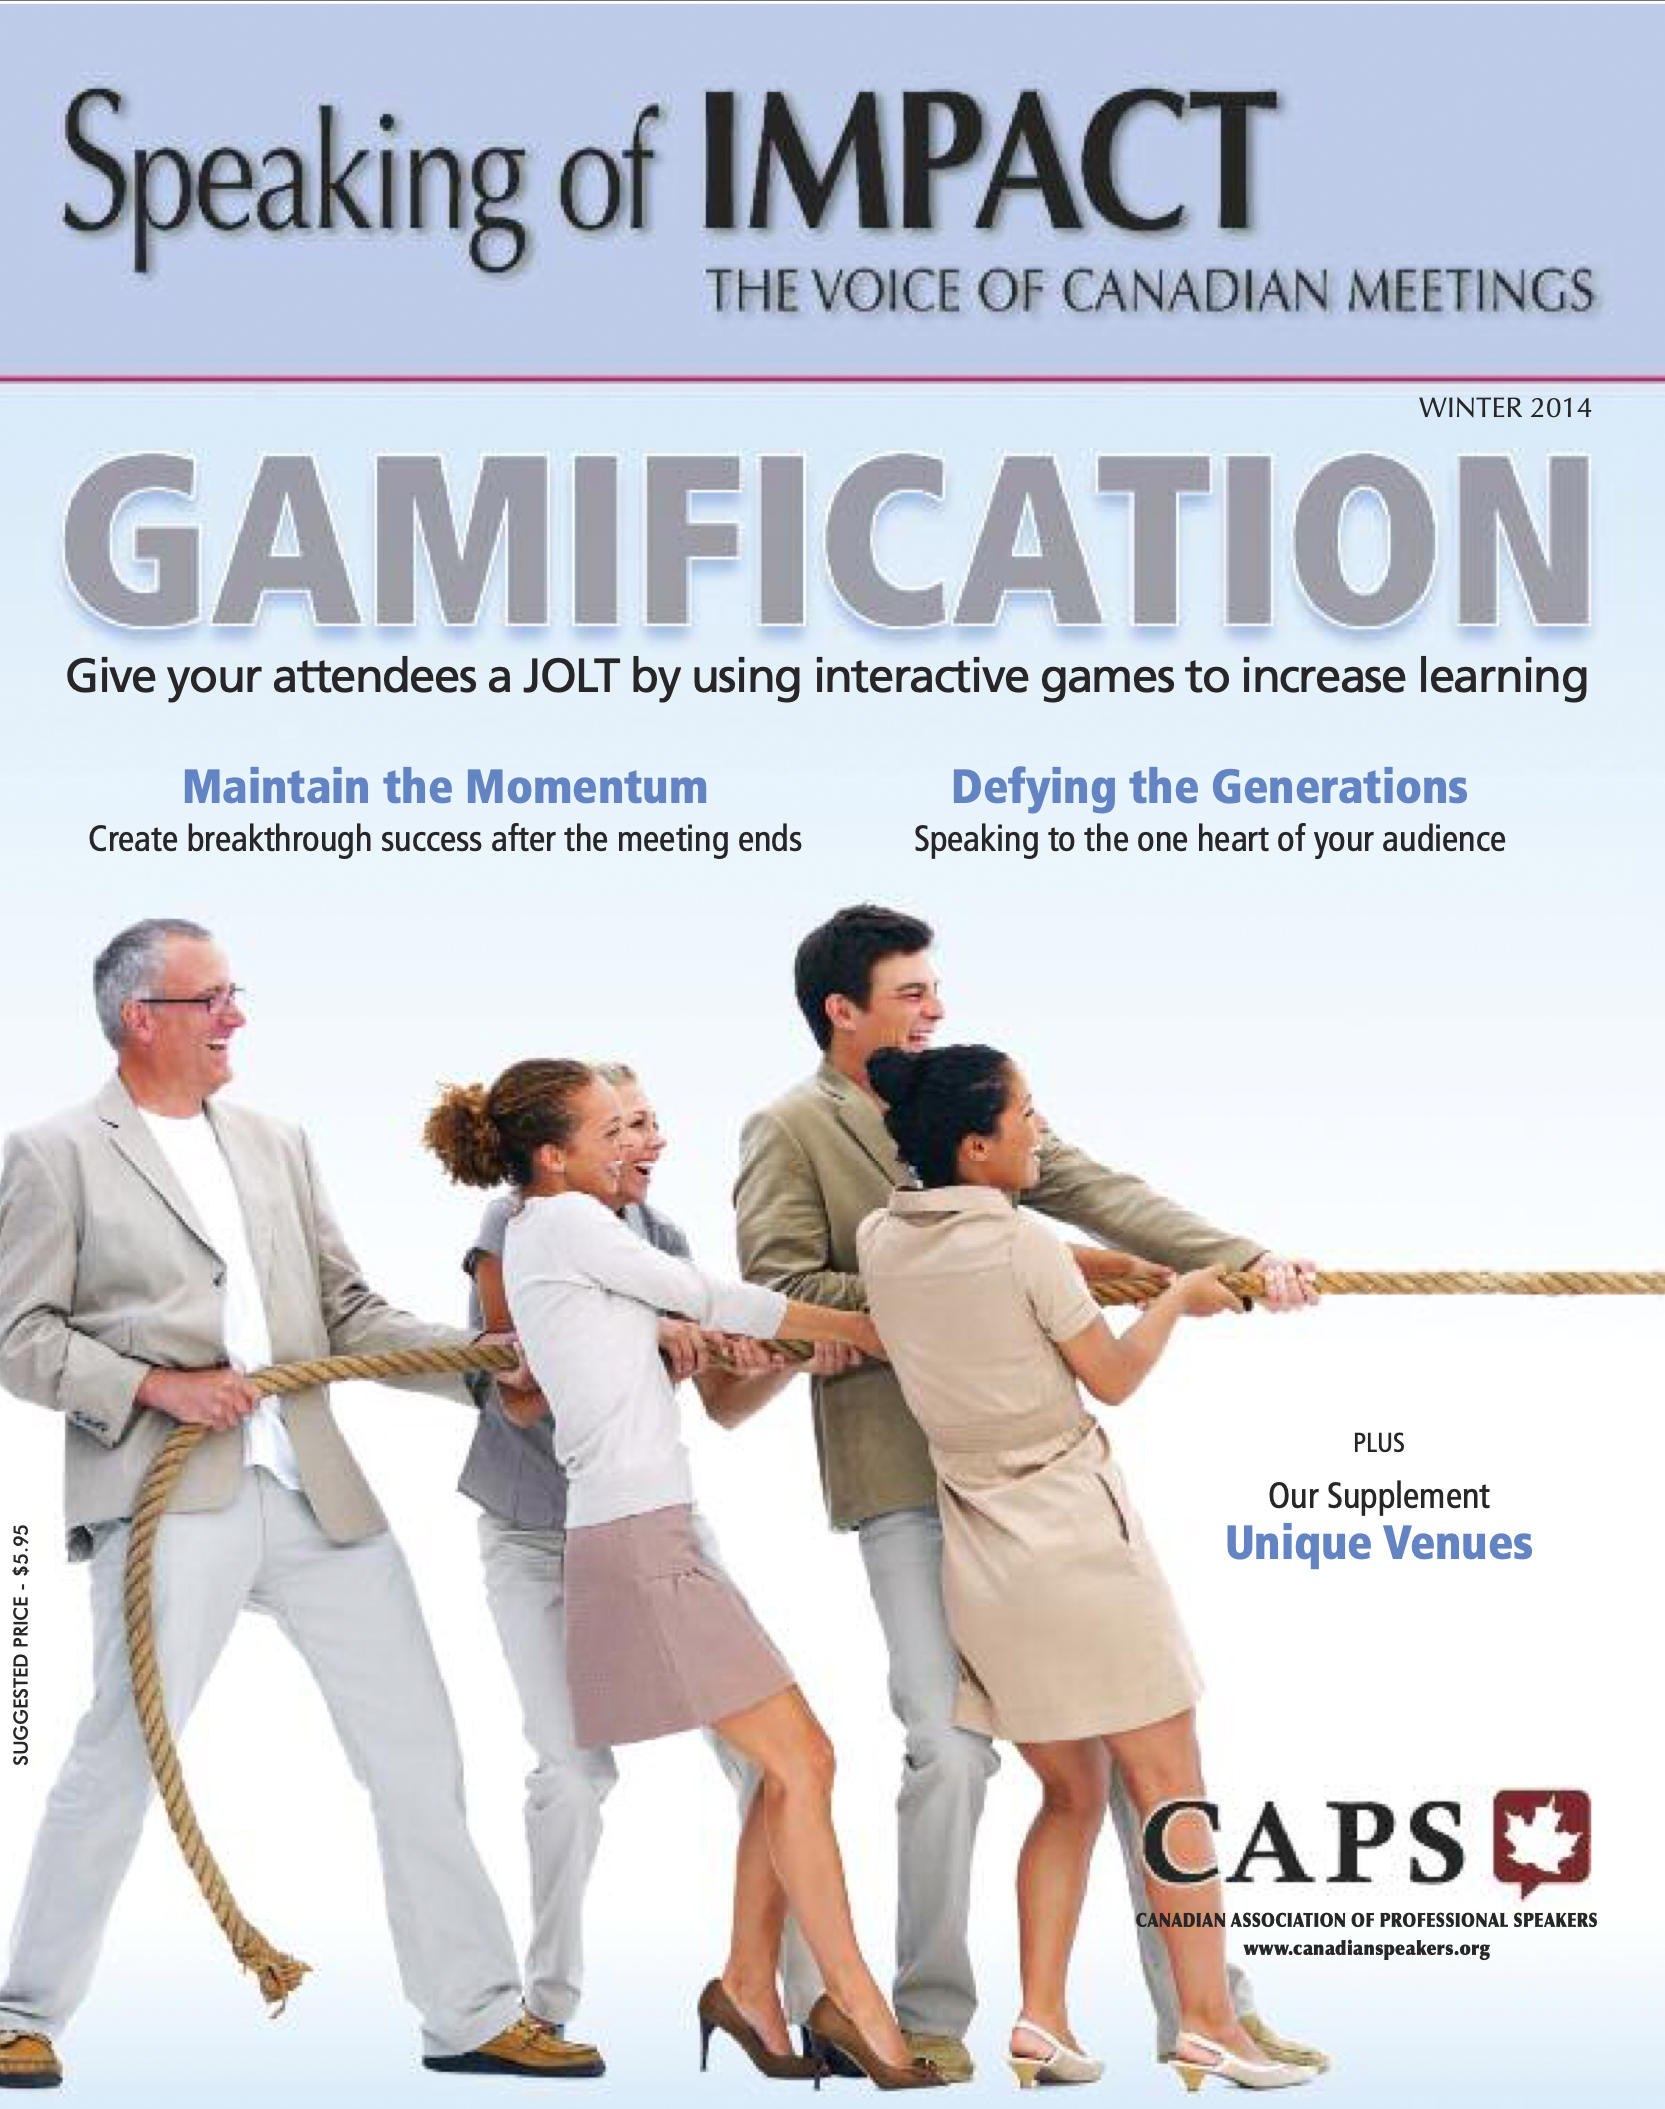 Gamification: Give your attendees a JOLT by using interactive games to increase learning